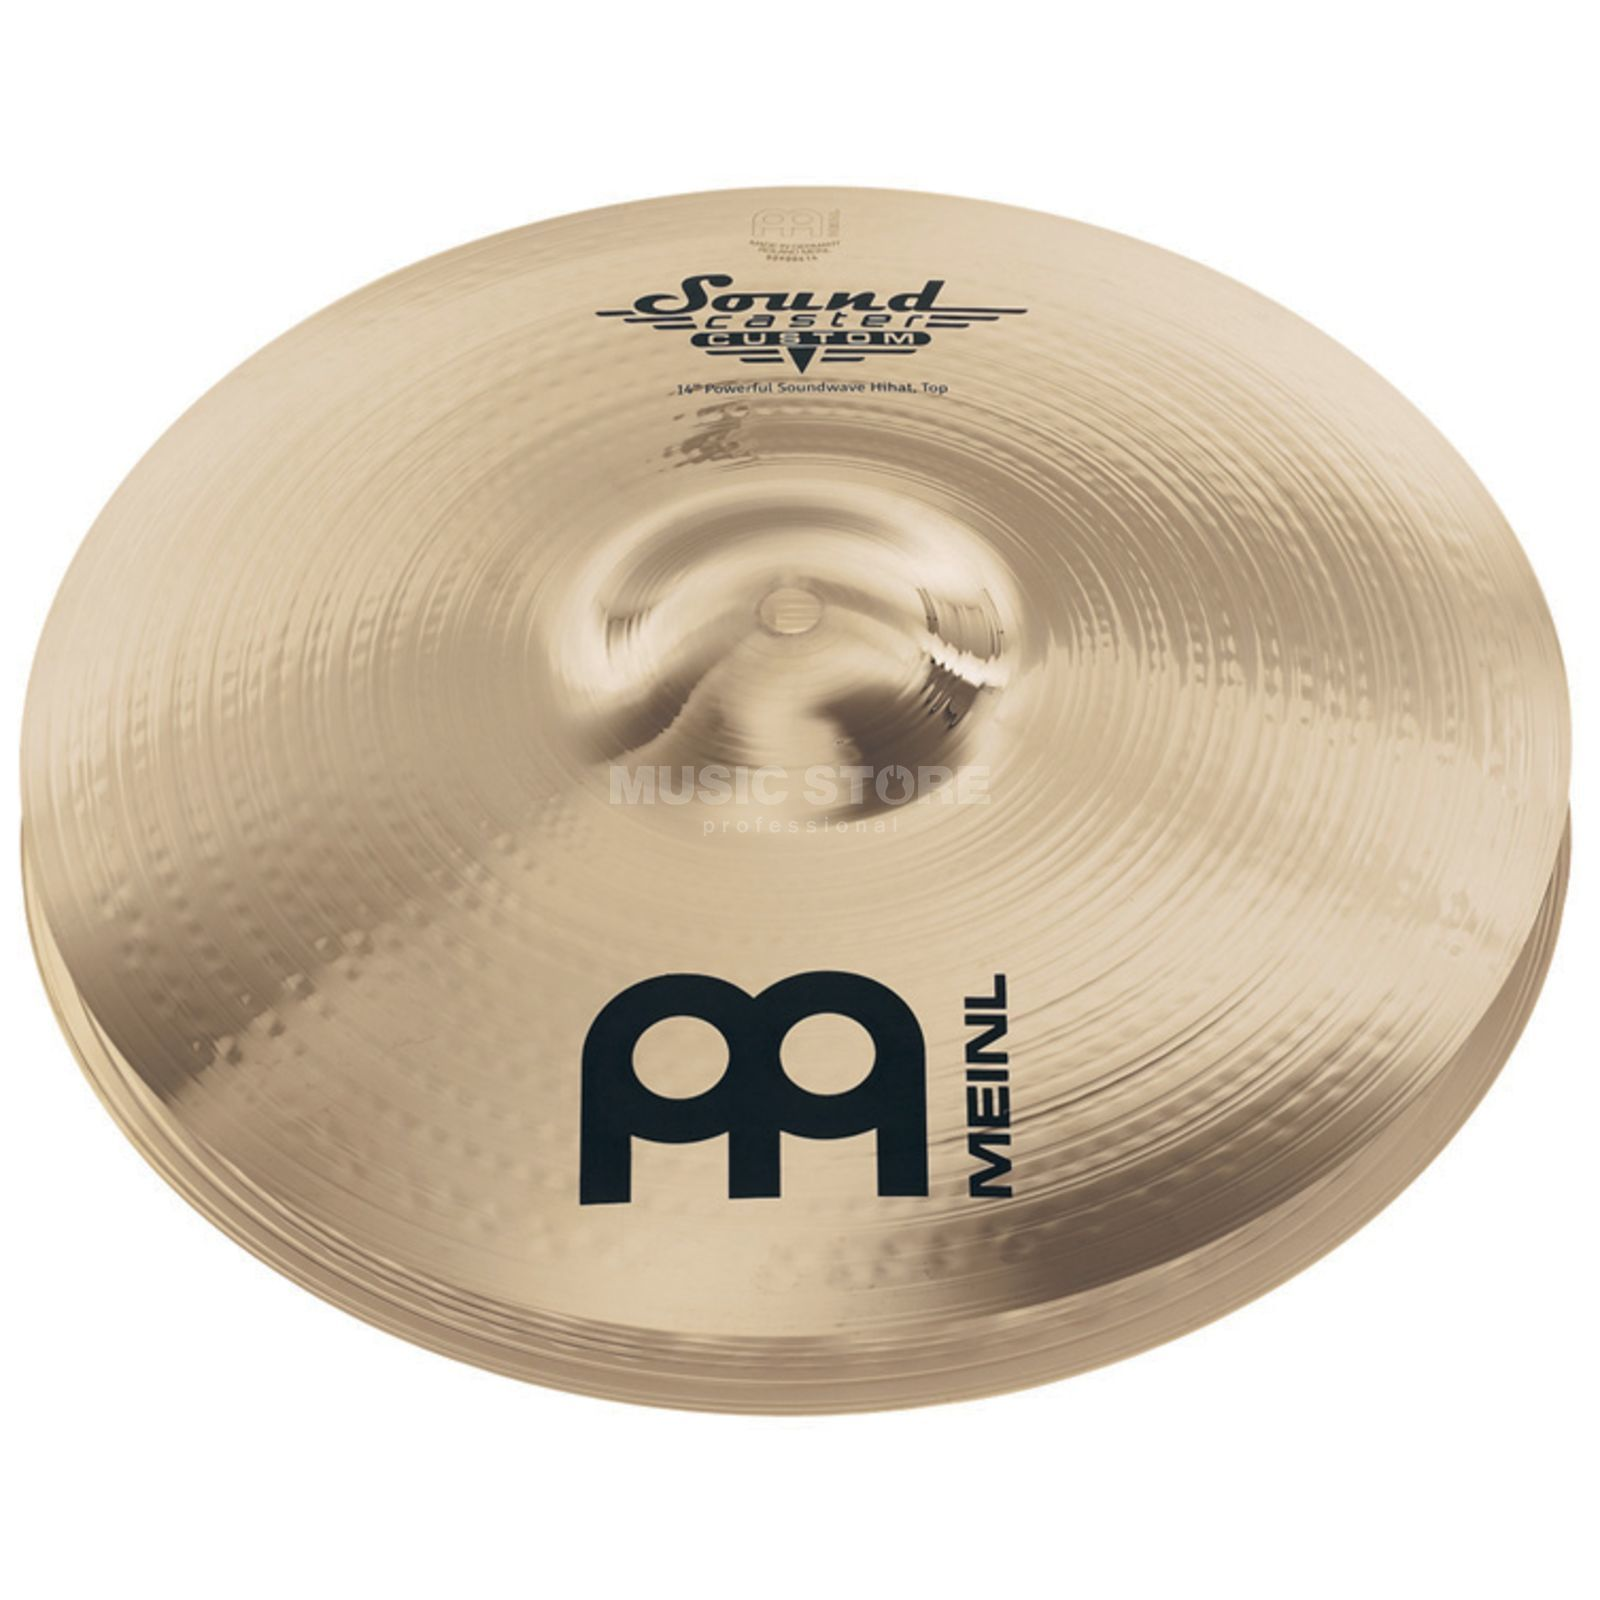 "Meinl SoundCaster Custom HiHat 14"" SC14PSW-B, Powerful, Soundwave Immagine prodotto"